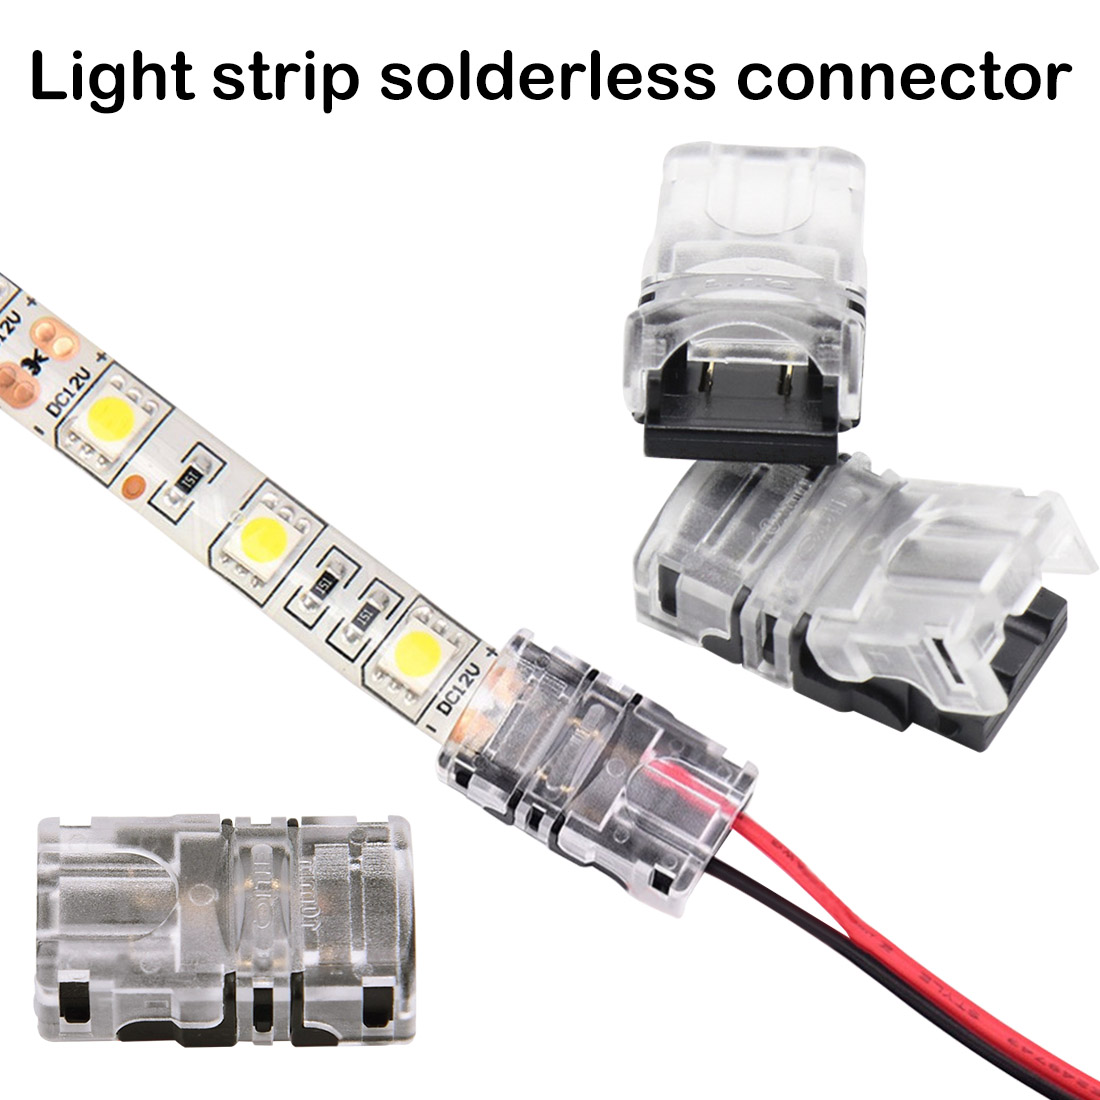 10mm 5050 LED Strip Connector 2 Pin For Waterproof Single Color Tape Light Snap Splicer